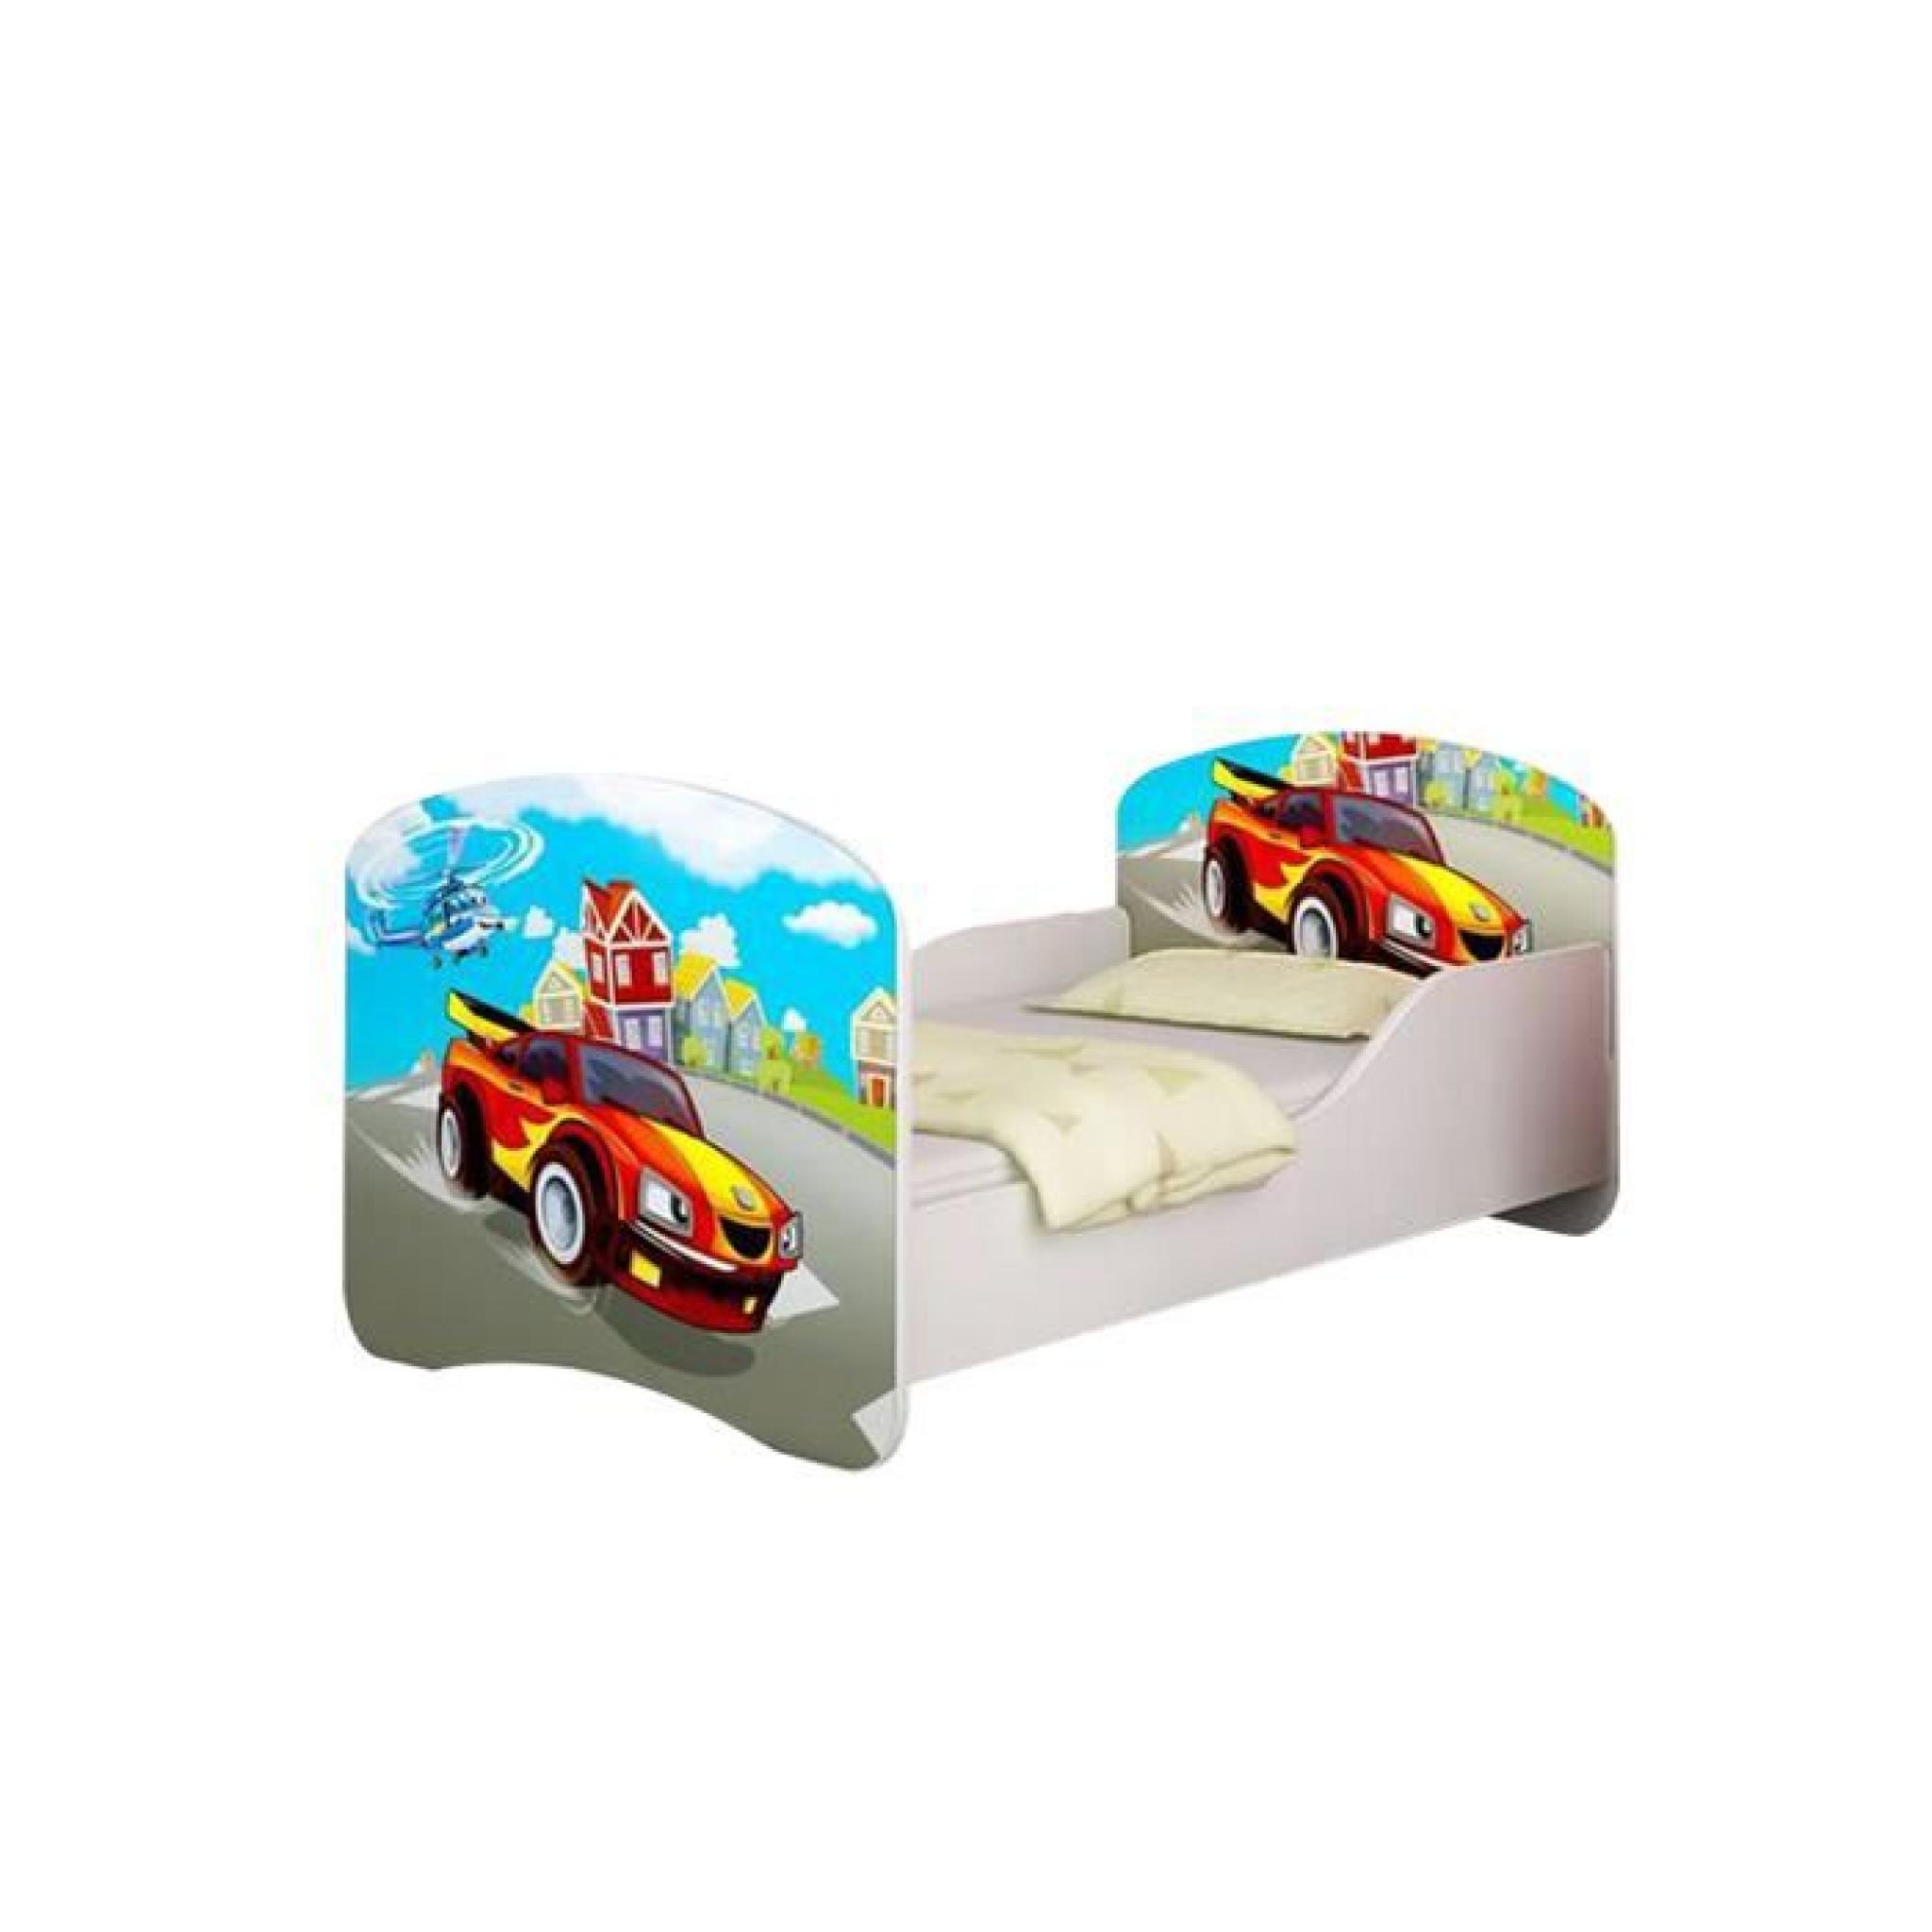 lit enfant voiture de rallye rouge sommier matelas 140x70 cm achat vente lit enfant pas. Black Bedroom Furniture Sets. Home Design Ideas